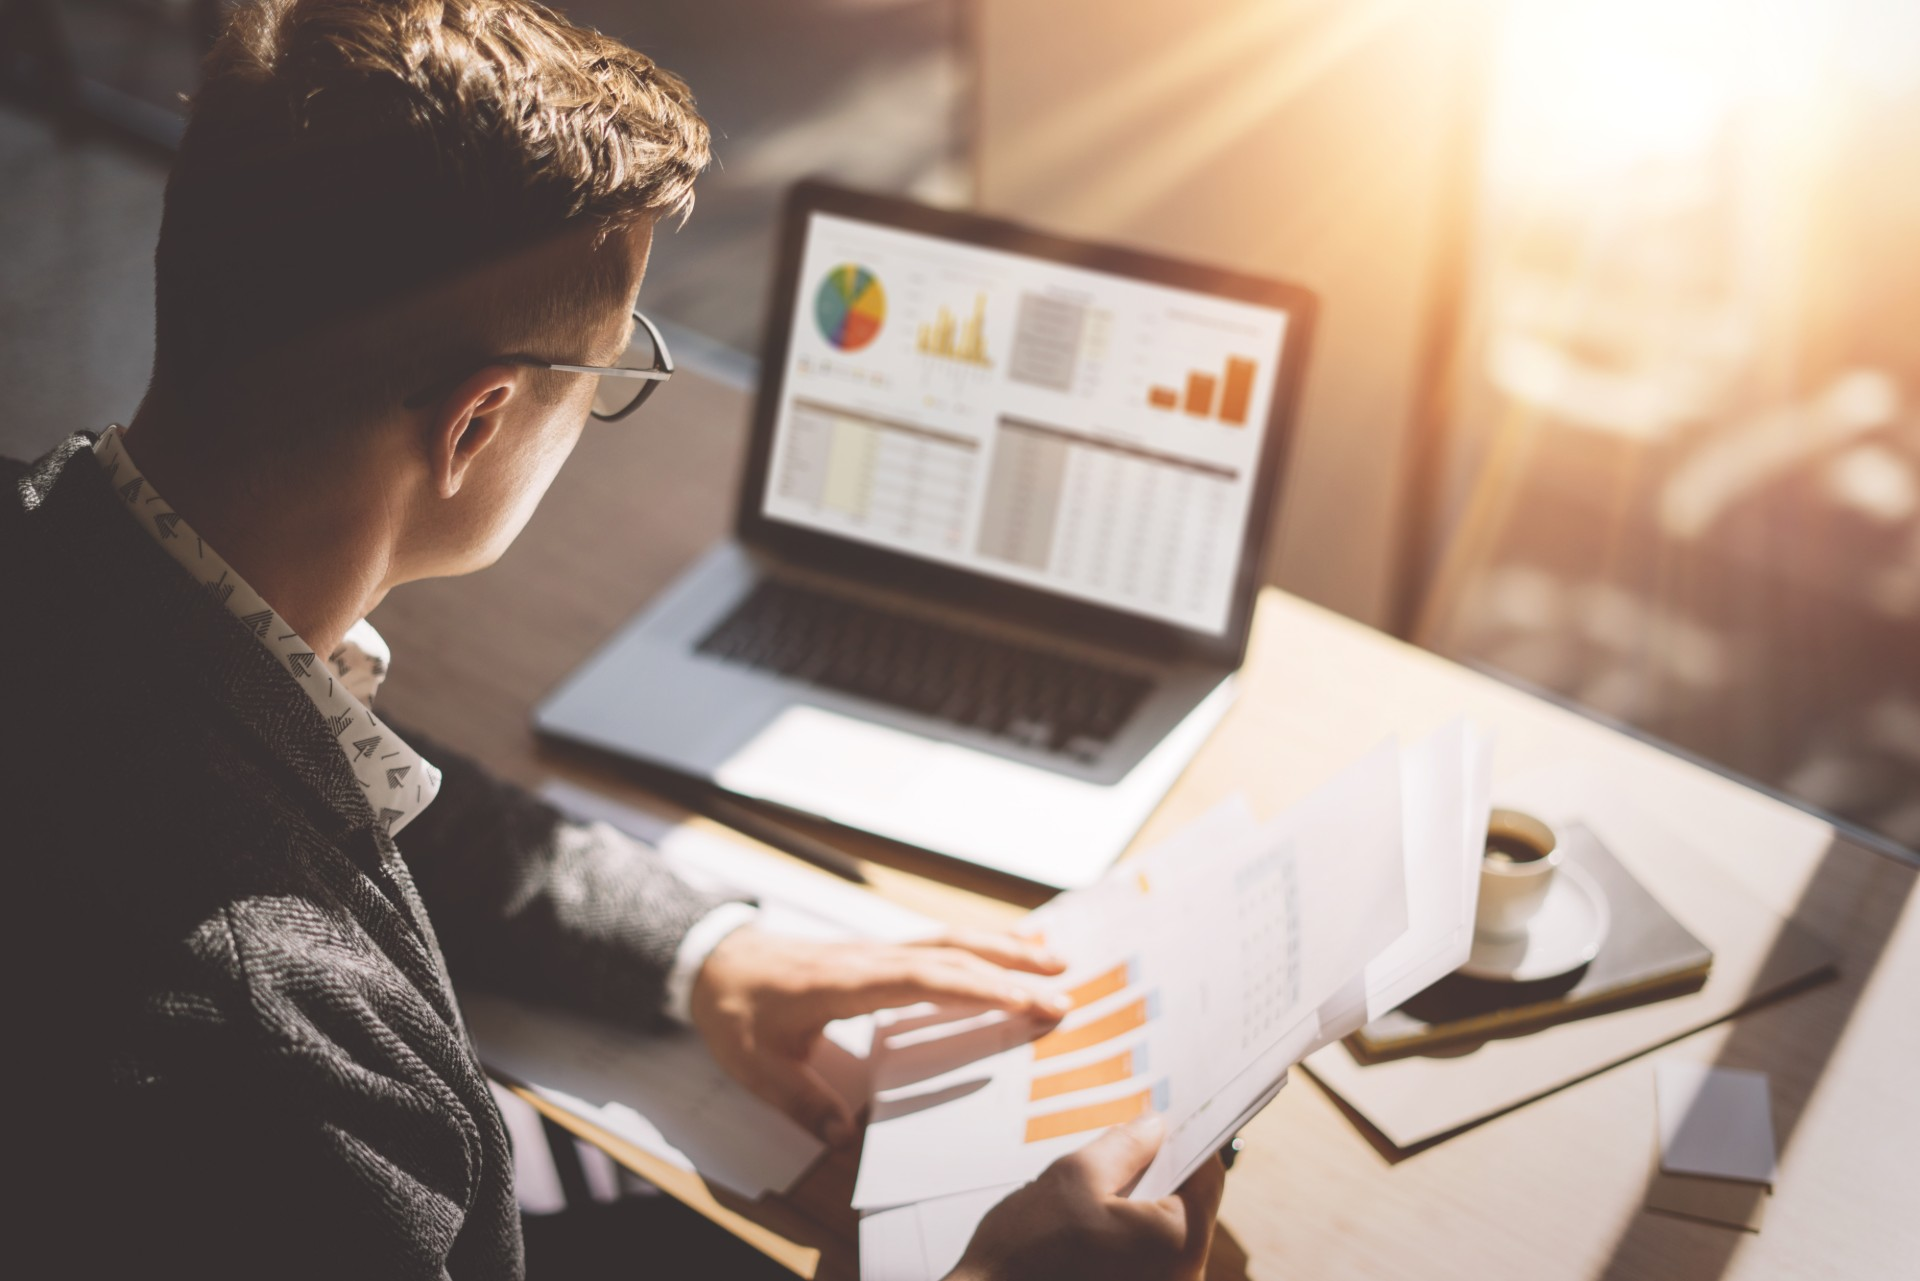 Finance manager looks over commission calculation reports and analytics